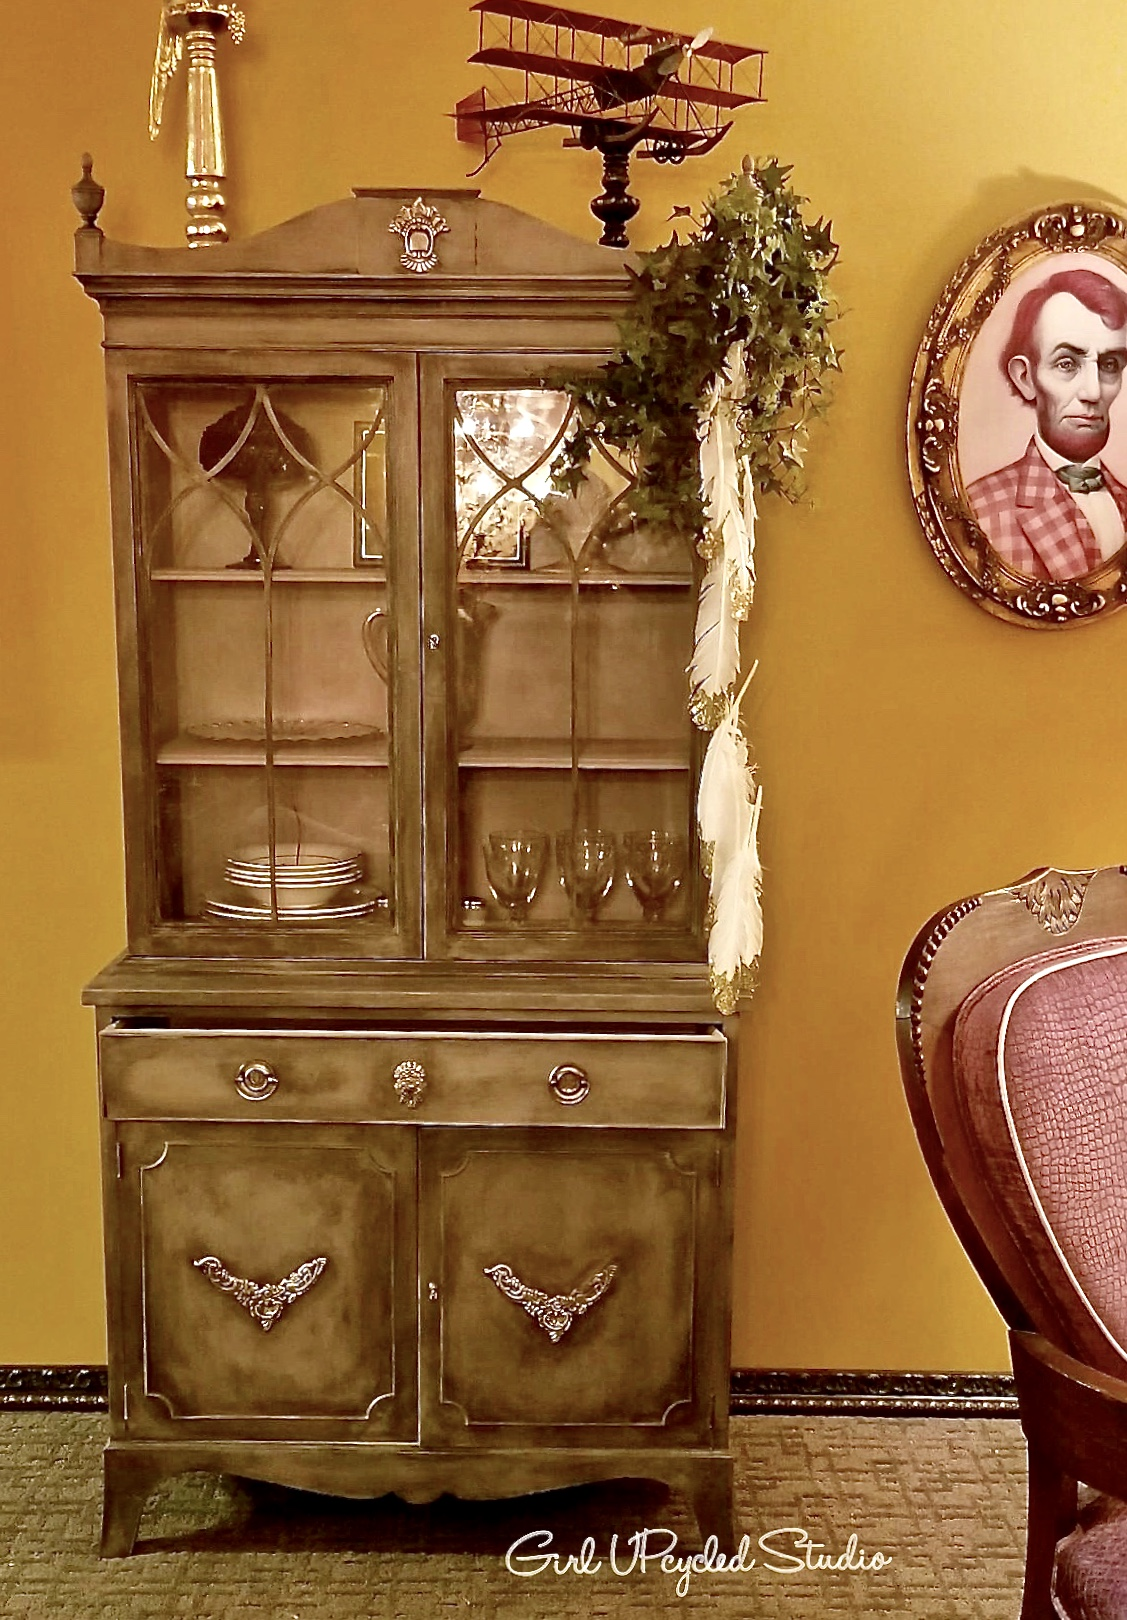 Proudly on display - This is an evening shot of Josephines lovely hutch that is now on showcase at my customers new Art Studio where she spends most of her spare time creating whimsical magical mixed media. The perfect spot for this special custom Painted Furniture project!